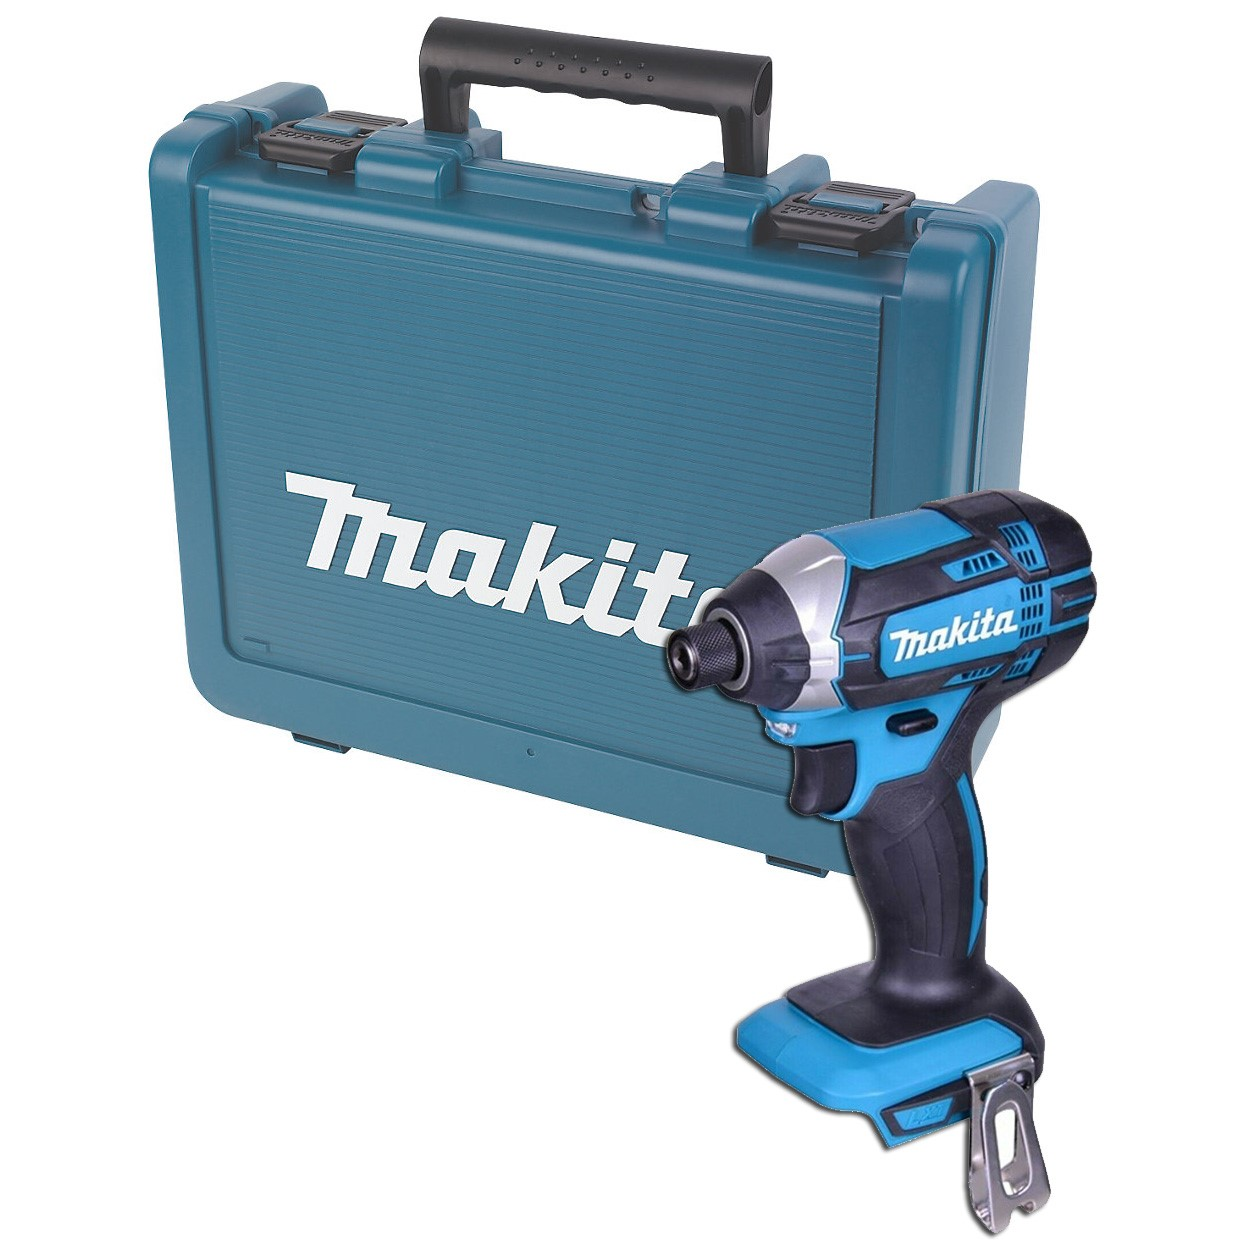 Details about Makita DTD152Z 18v Impact Driver Lithium Ion LXT Bare Tool -  Includes Case